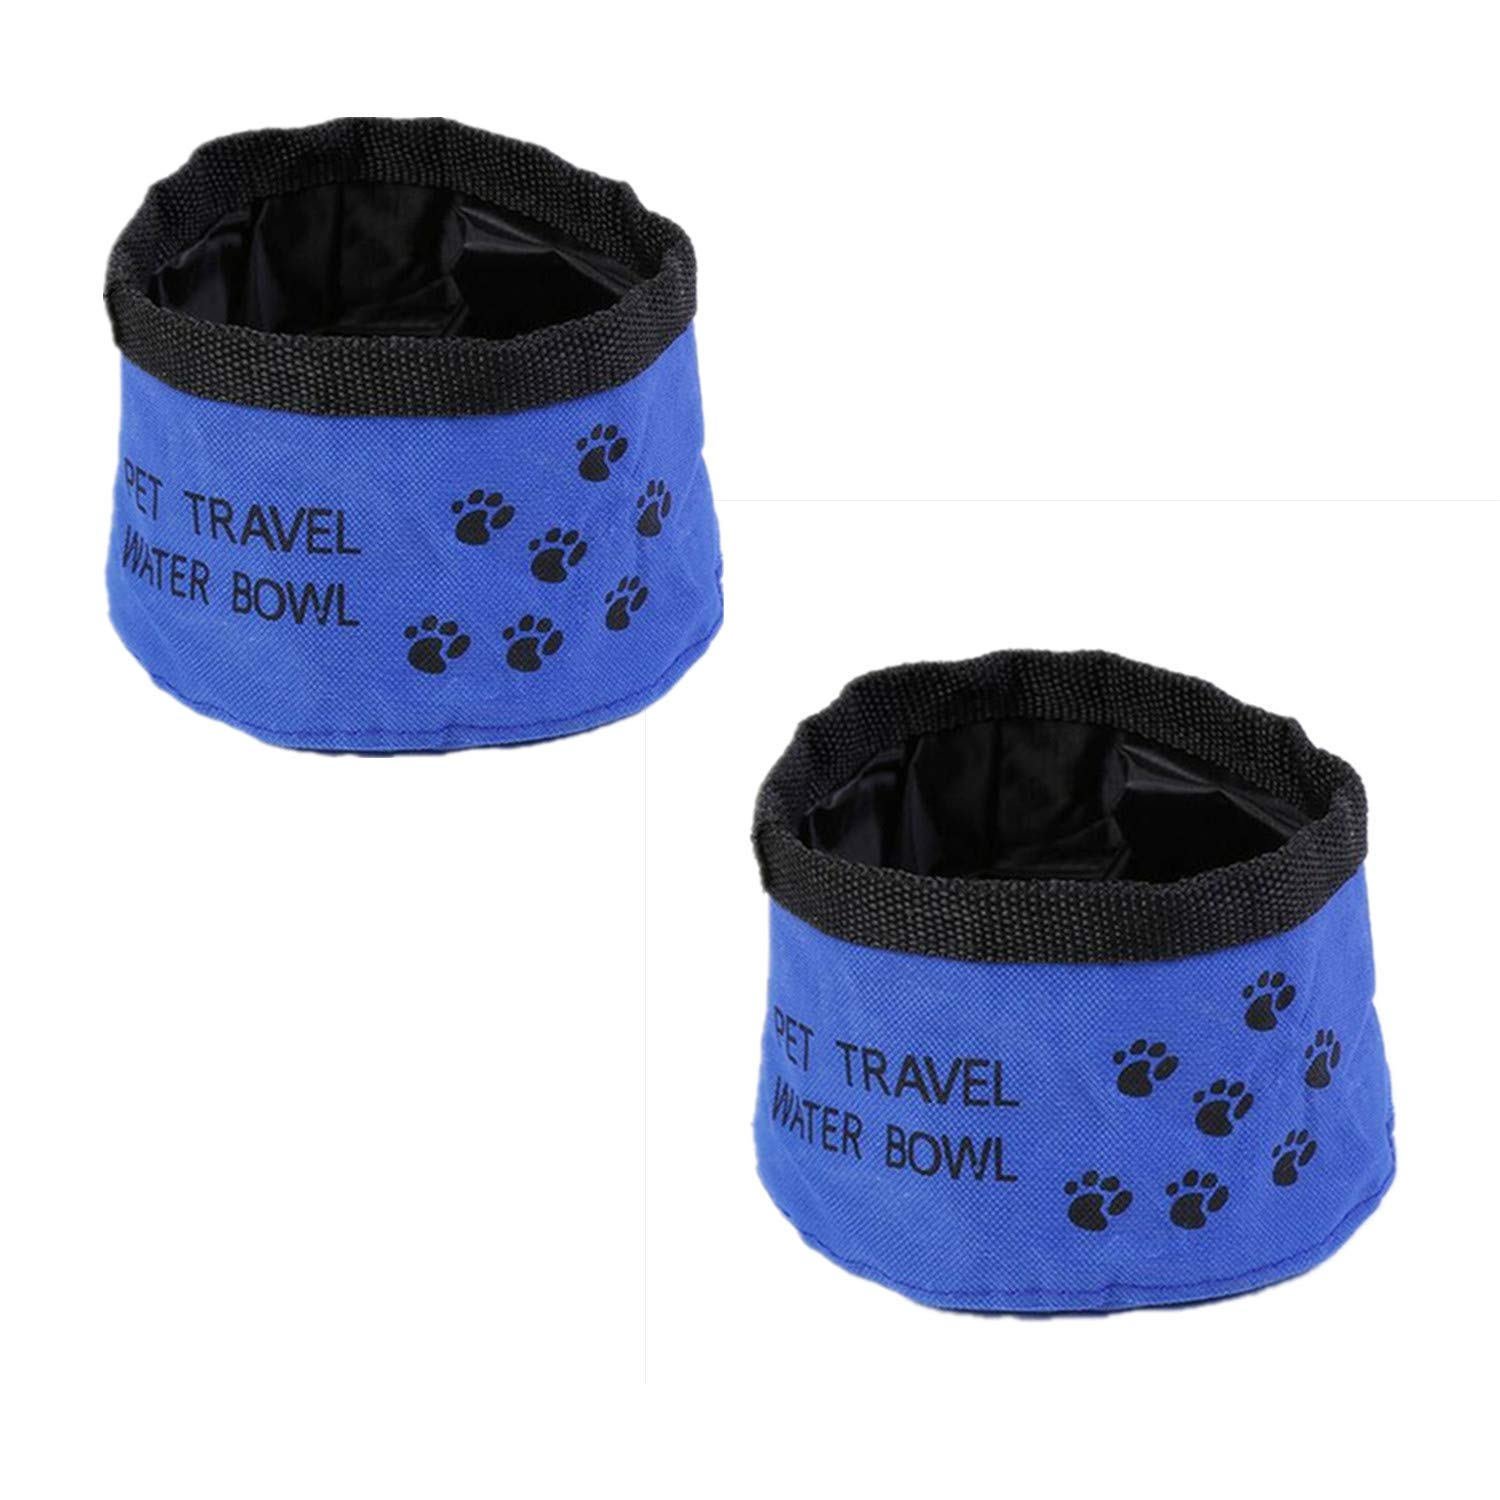 ReachTop Collapsible Dog Bowl, Travel Pet Bowl Portable Dog Cat Travel Bowls for Food and Water, Waterproof, Non-toxic, Pack of 2